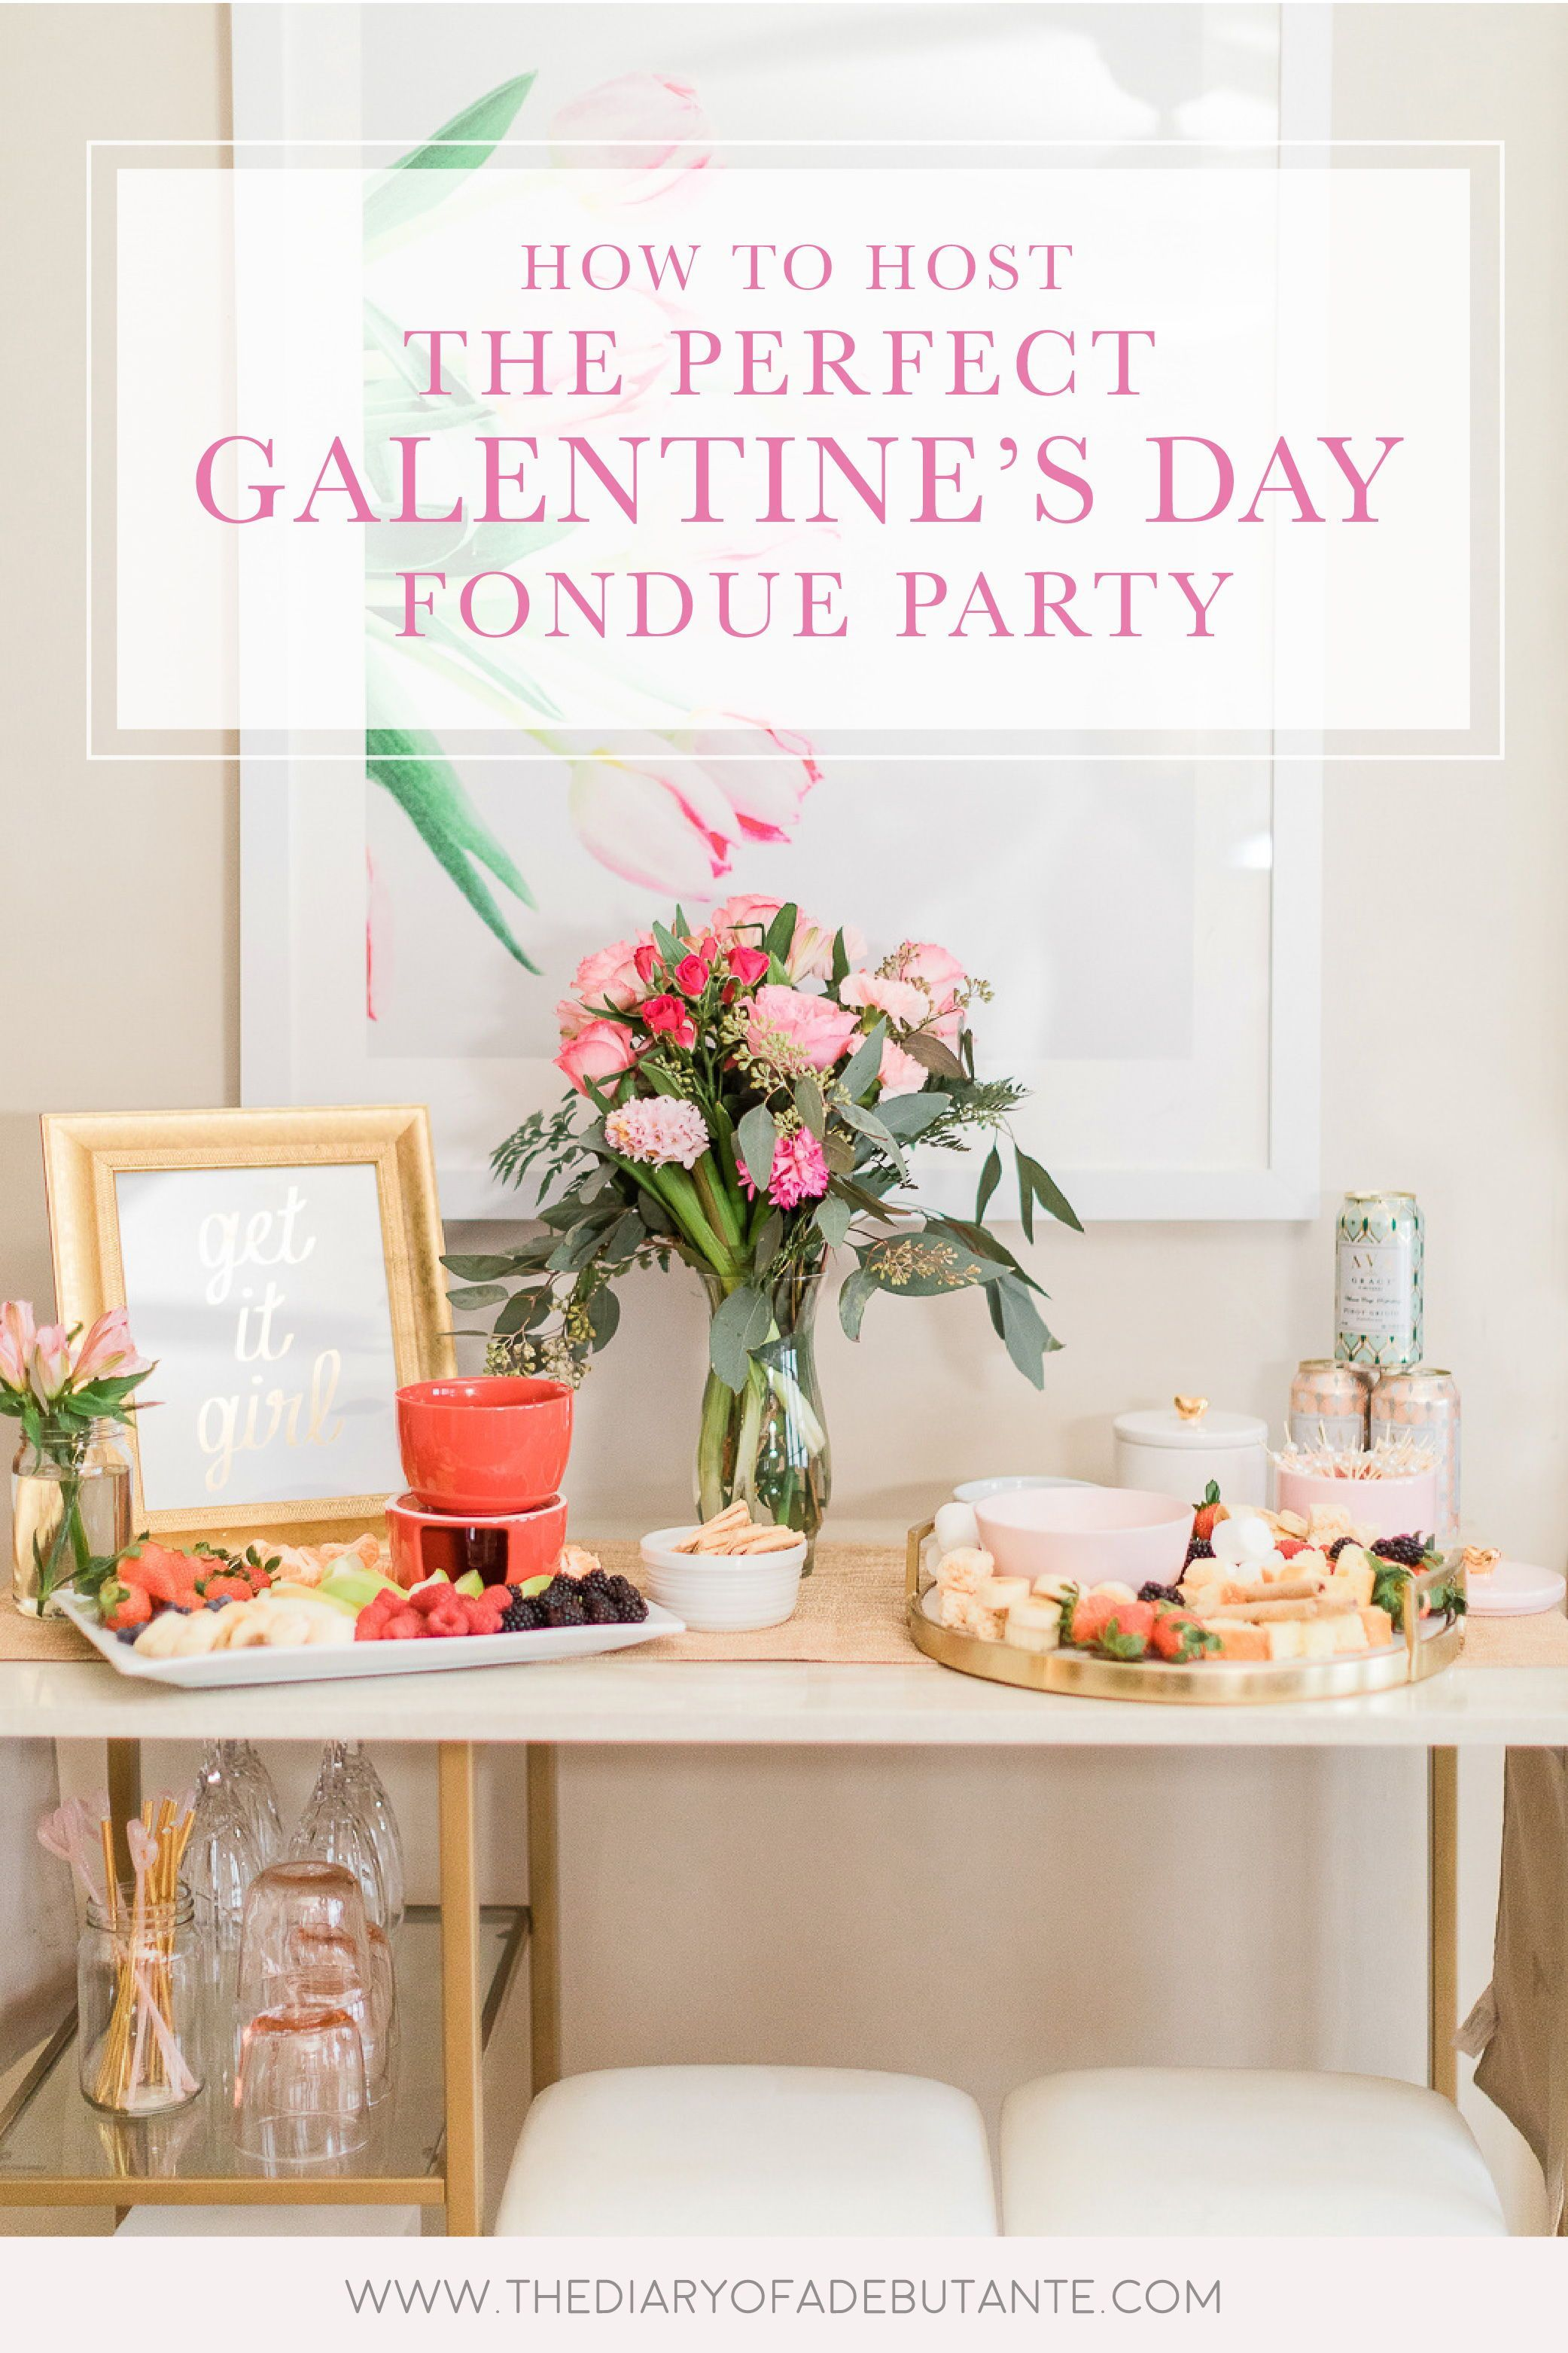 Galentine's Day Guide: Tips for Hosting a Fondue Party at Home